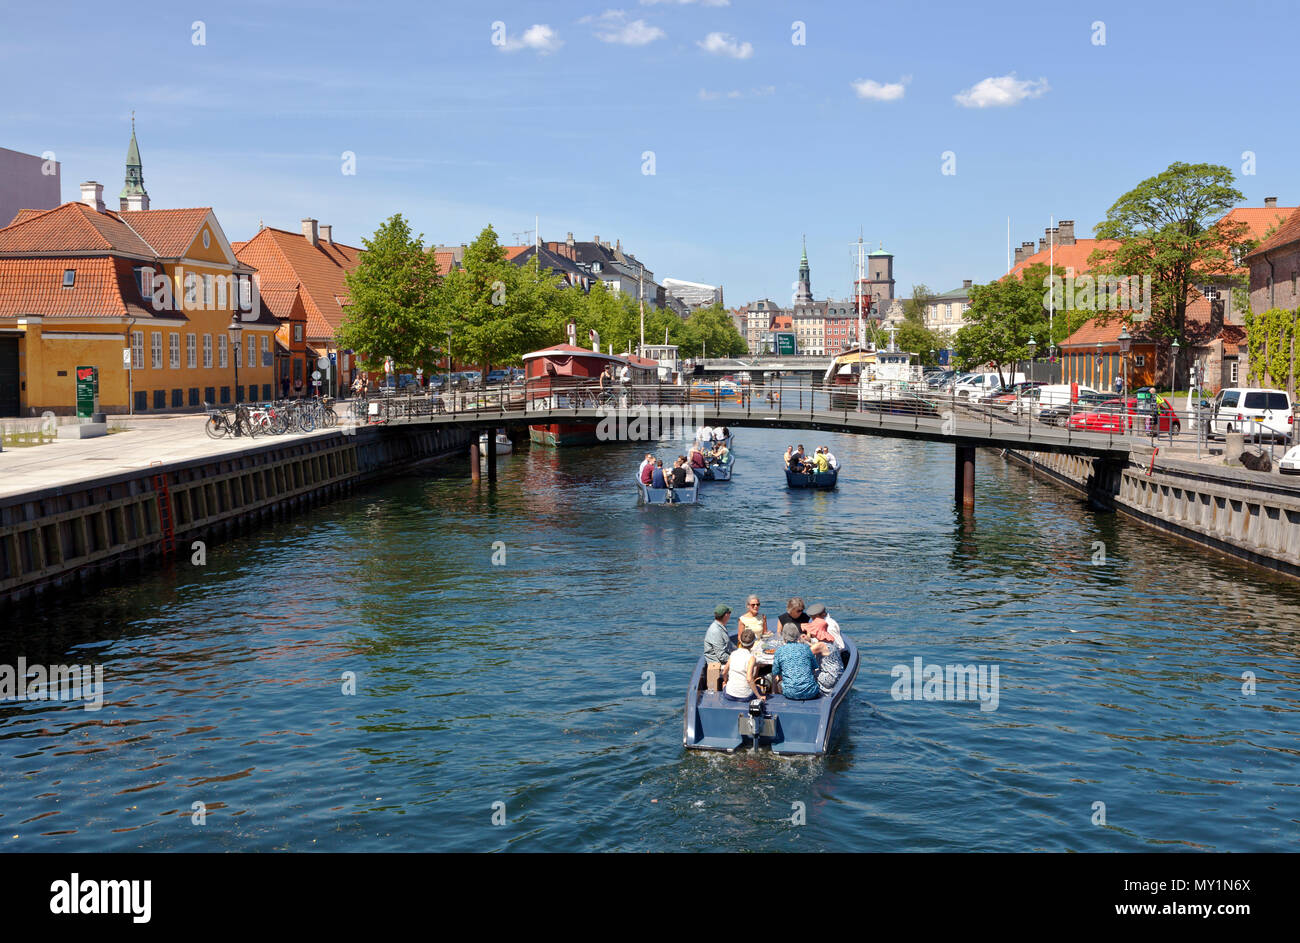 Electric Goboat picnic tour boats in Frederiksholm Canal in Copenhagen, Denmark. Pedestrian bridge and further away the Prince's Bridge, Prinsens Bro. Stock Photo